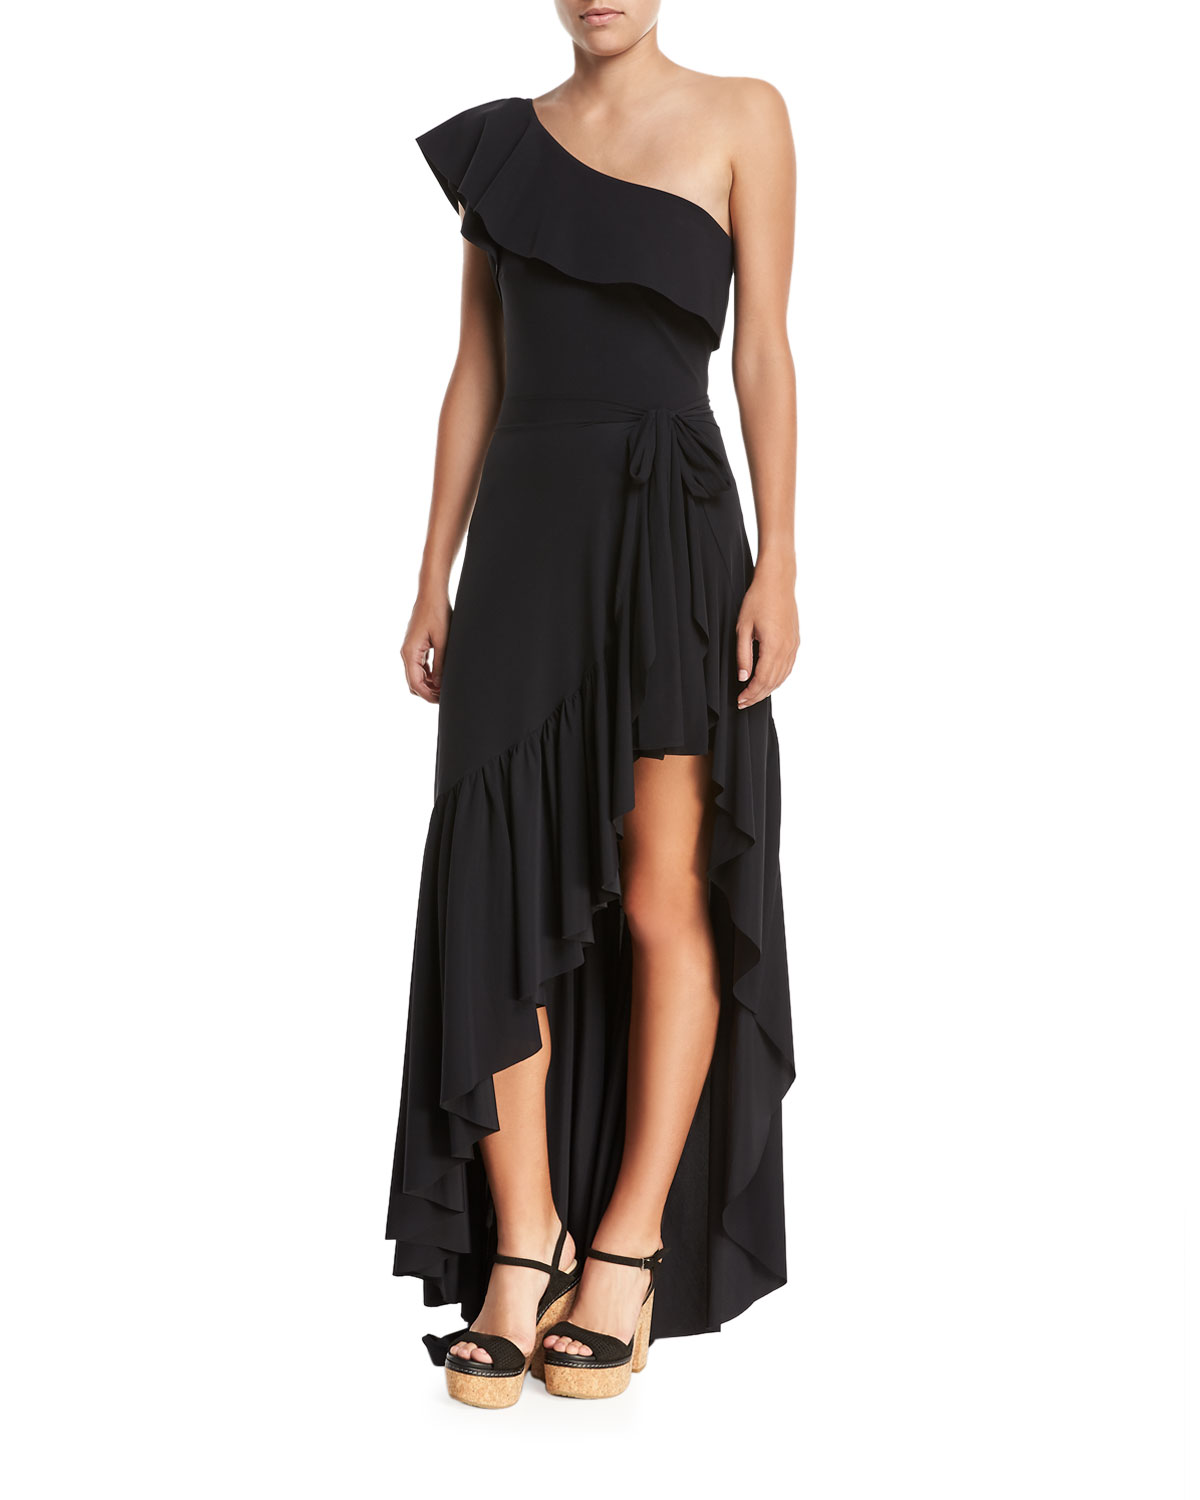 Eli One-Shoulder Solid One-Piece Swimsuit